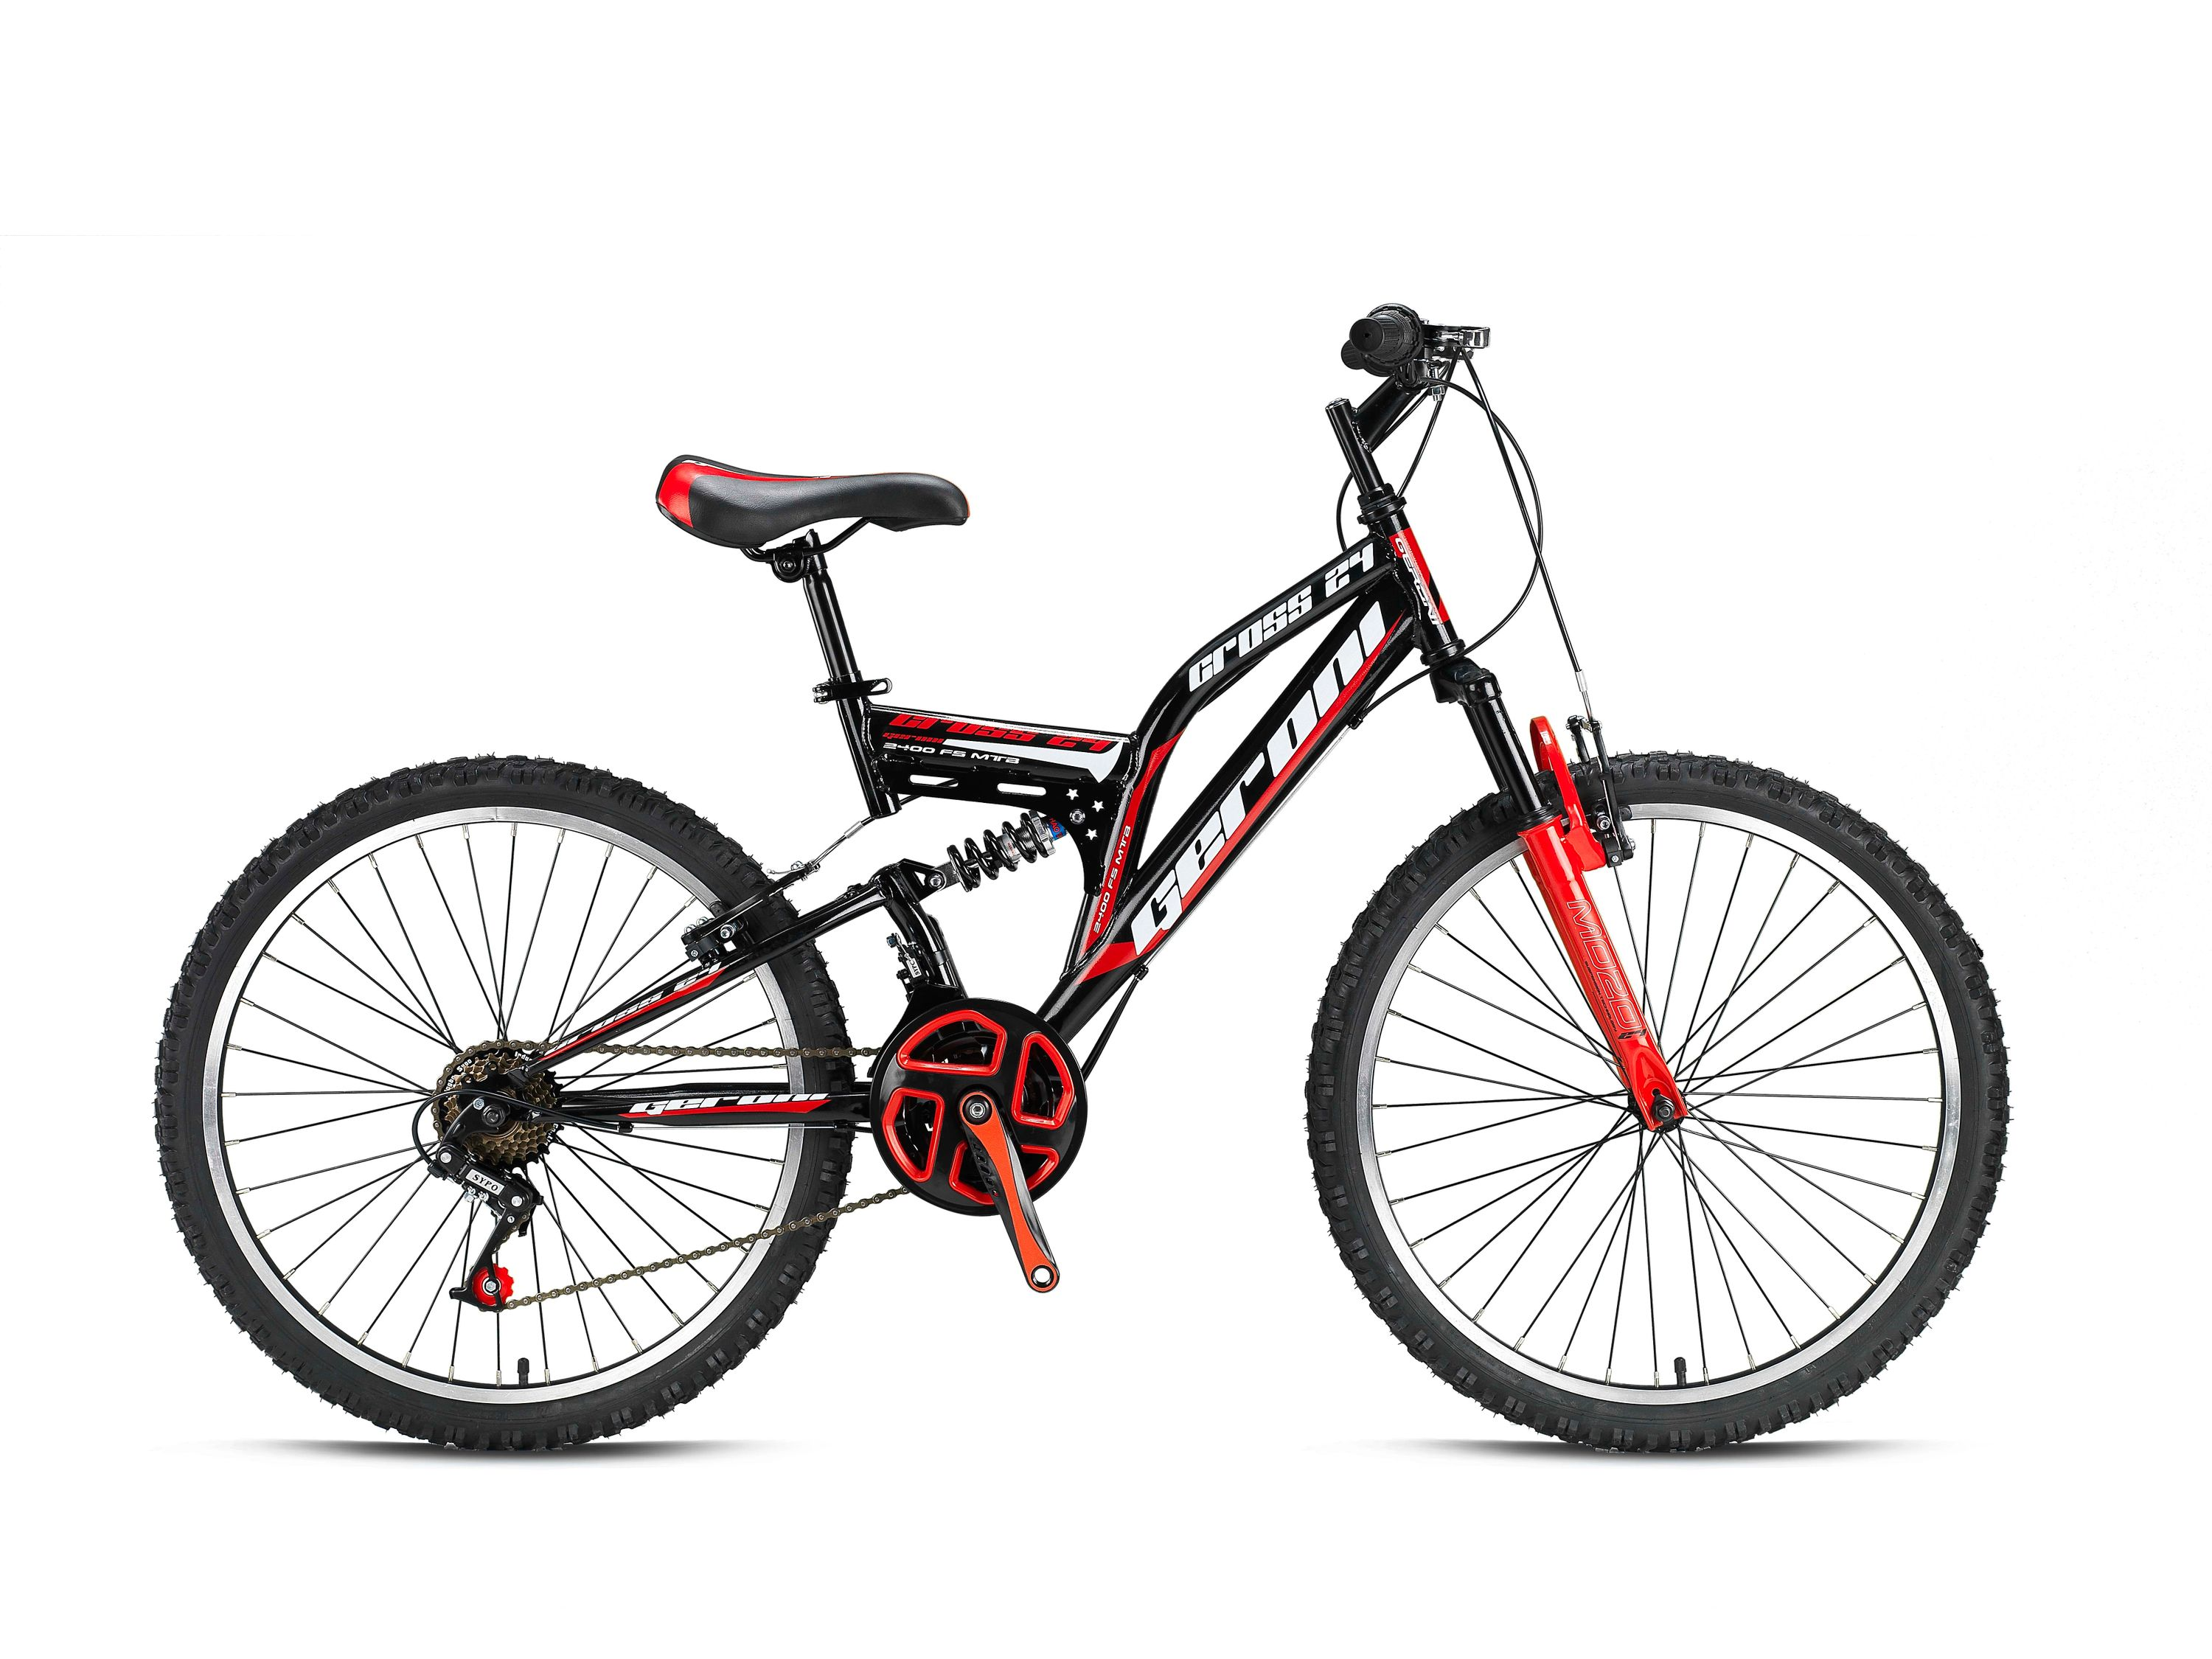 24 zoll fahrrad kinderfahrrad jungenfahrrad mountainbike mtb rad cross bike ebay. Black Bedroom Furniture Sets. Home Design Ideas